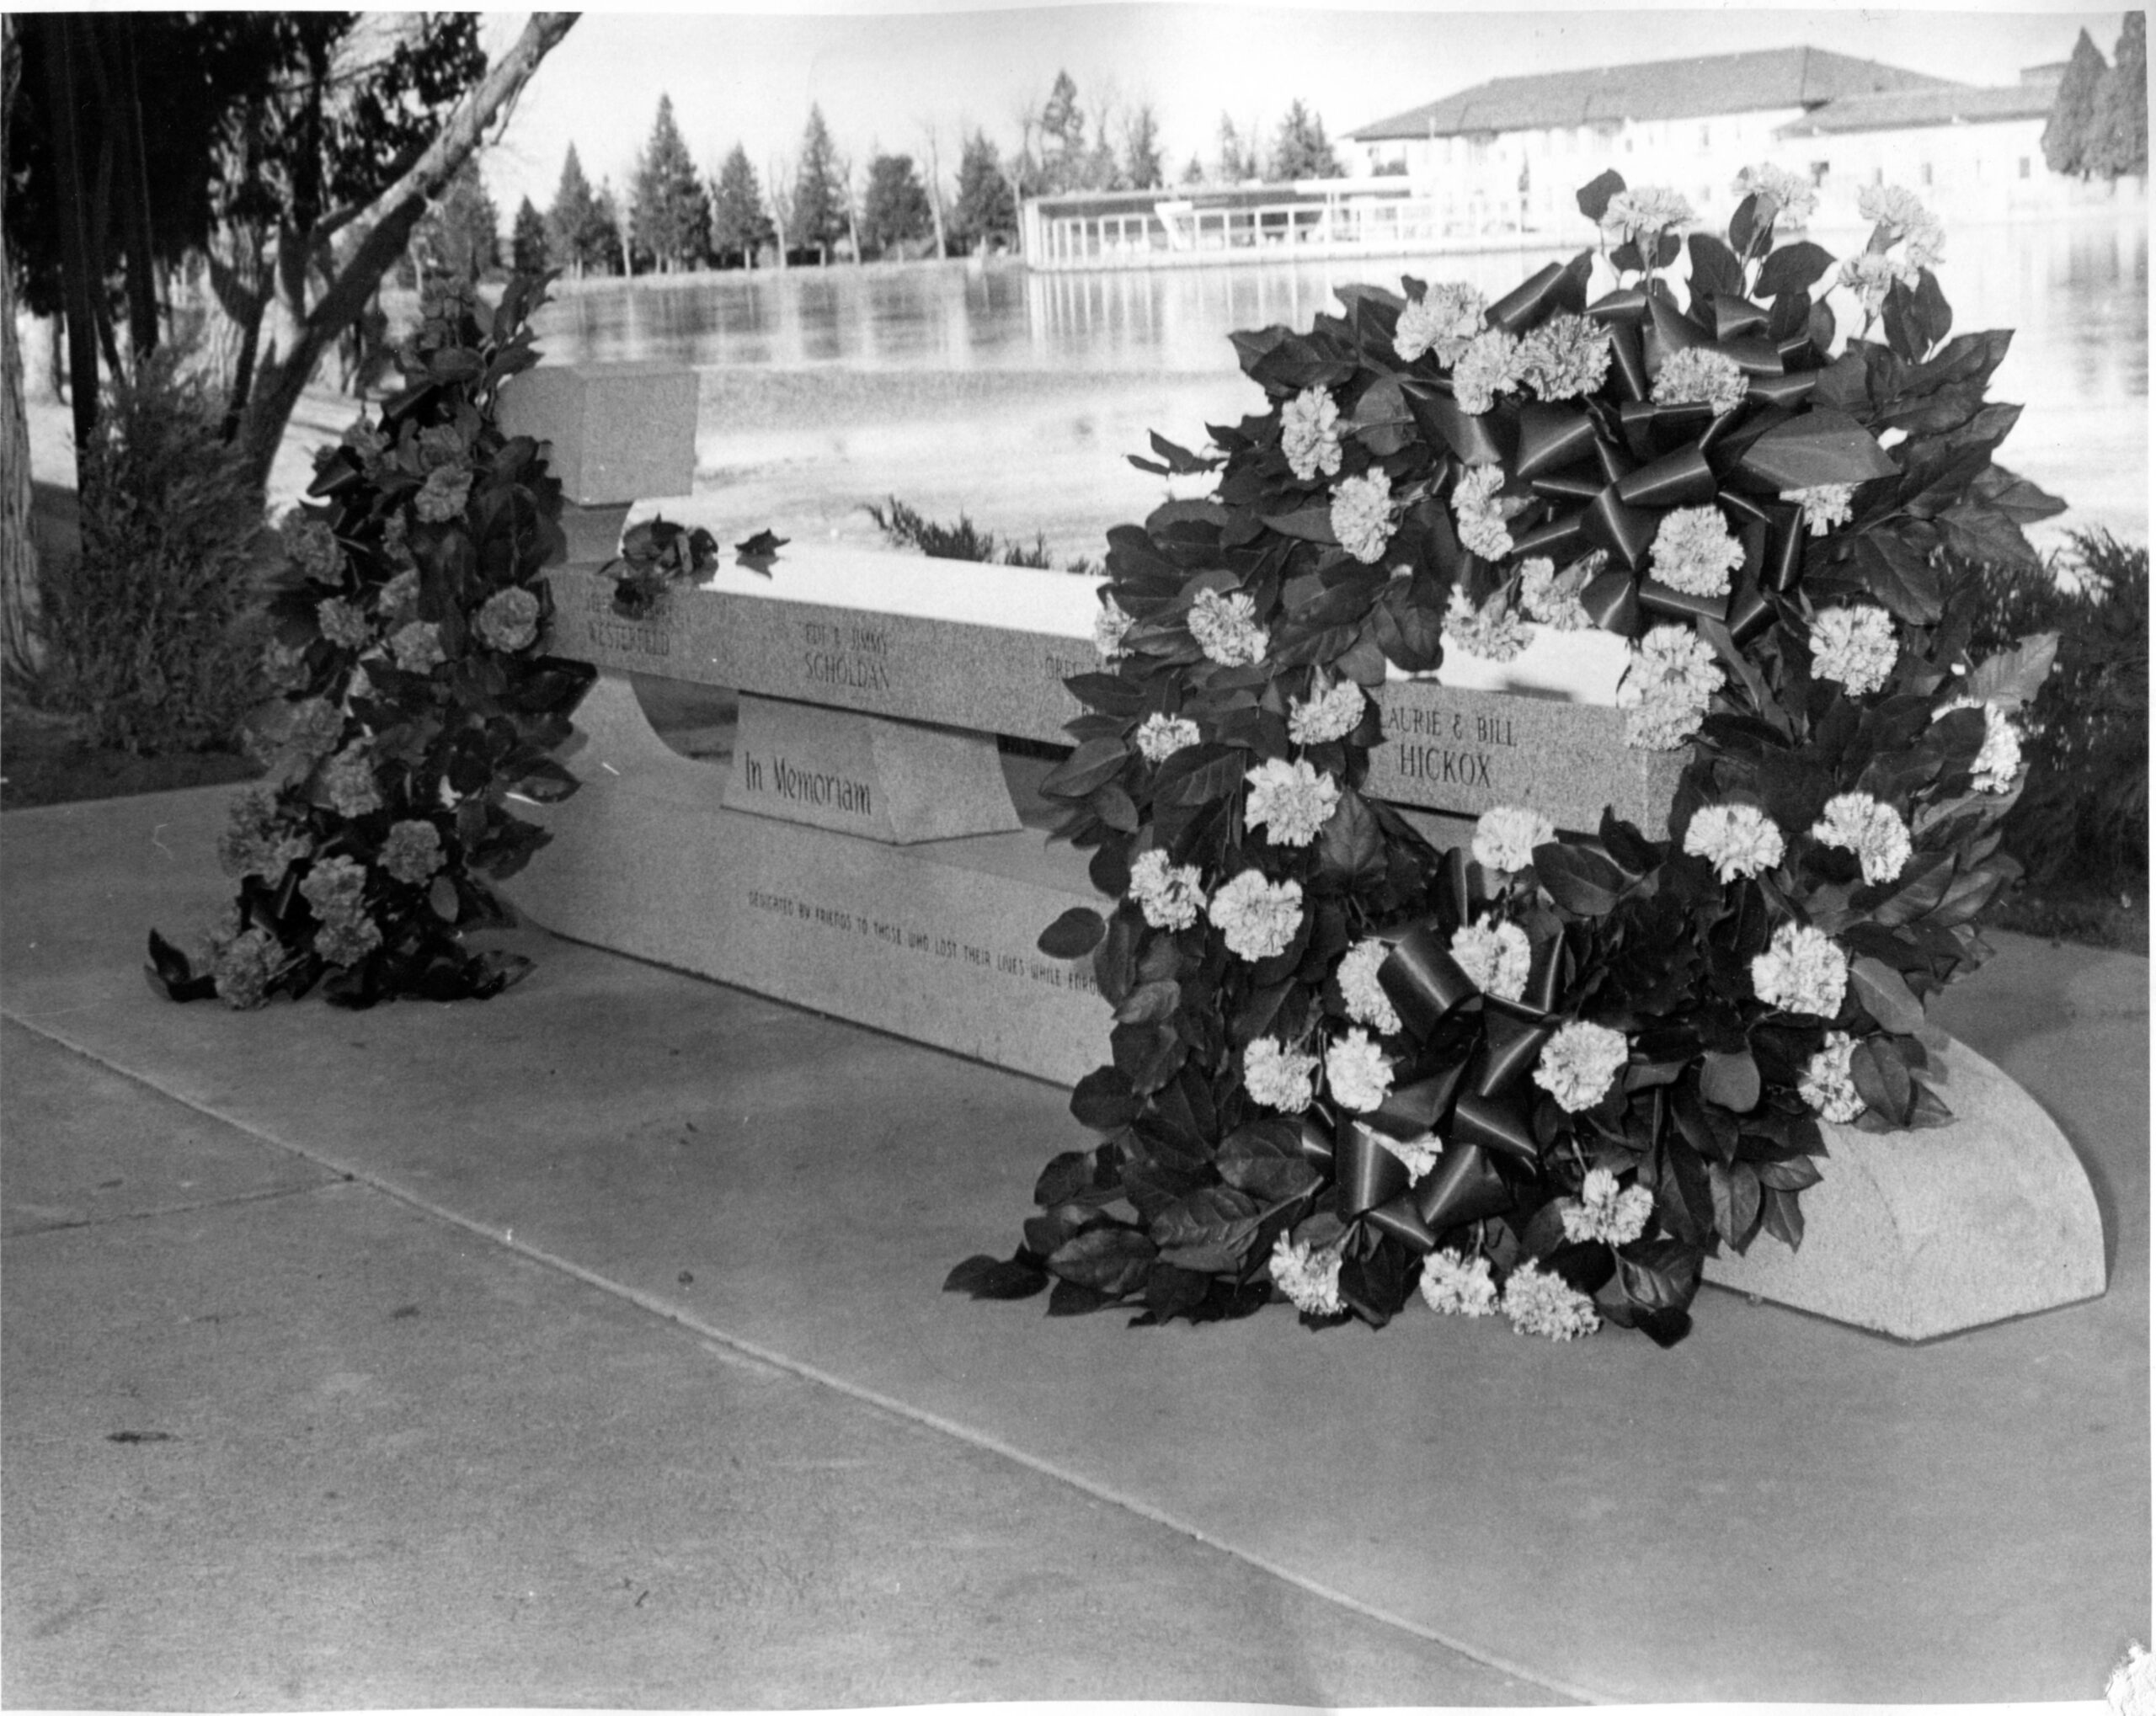 A bench at the Broadmoor hotel in Colorado Springs in 1961, honoring the lives lost in the 1961 plane crash that killed all members of the US Olympic Figure Skating Team.